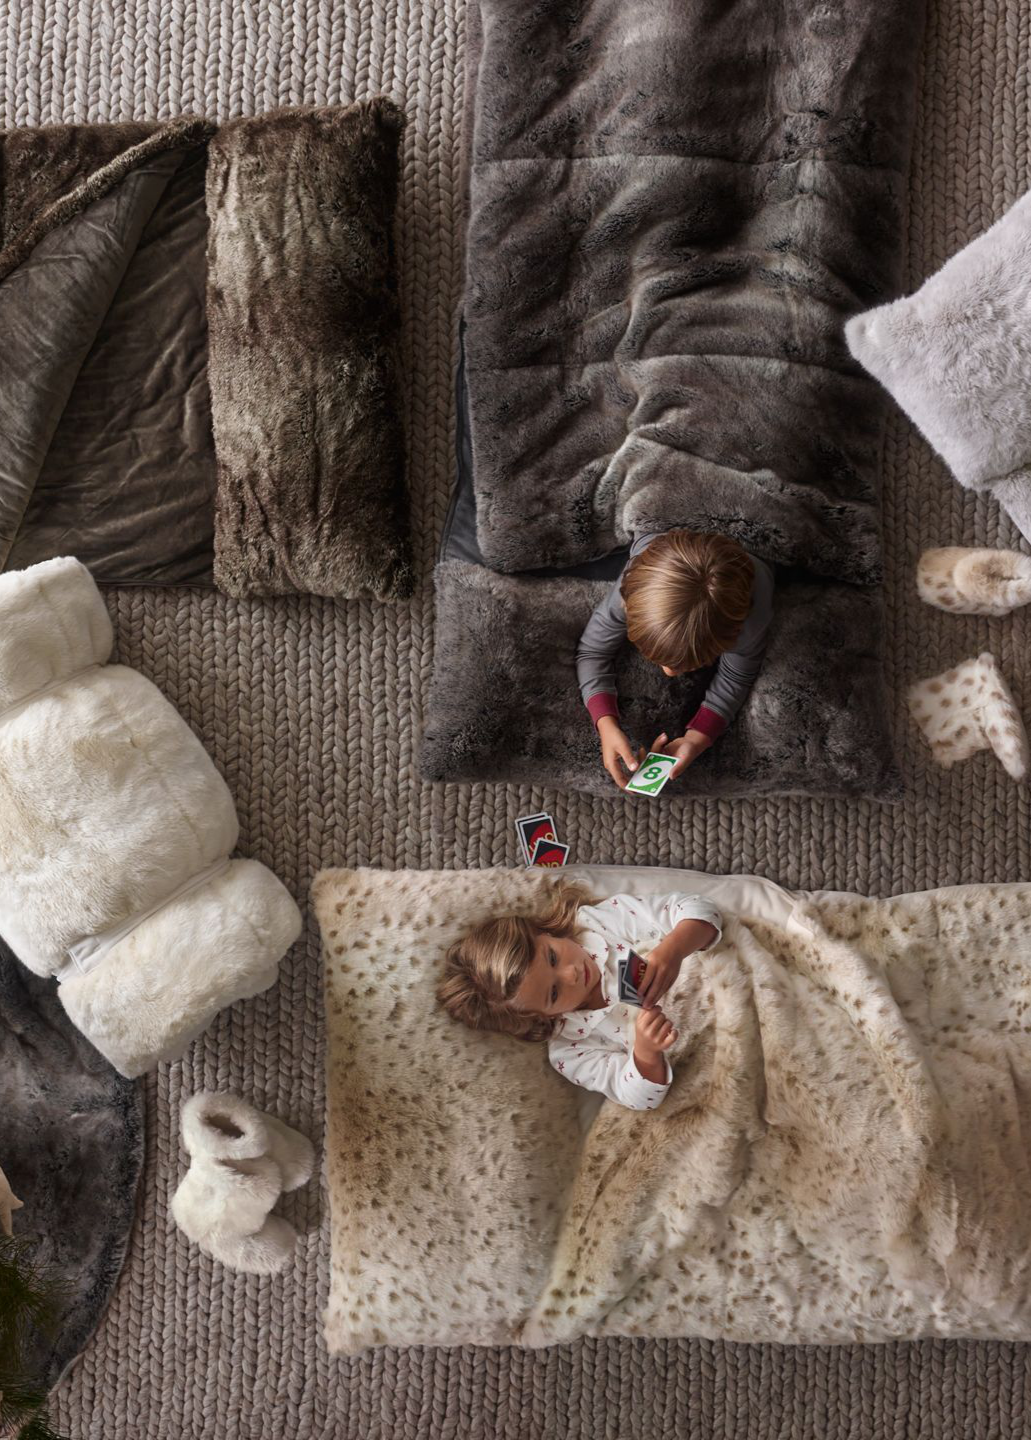 d2d3acfec618 keep floor-crashers warm and cozy with snuggly faux fur sleeping bags.   rhbabyandchild